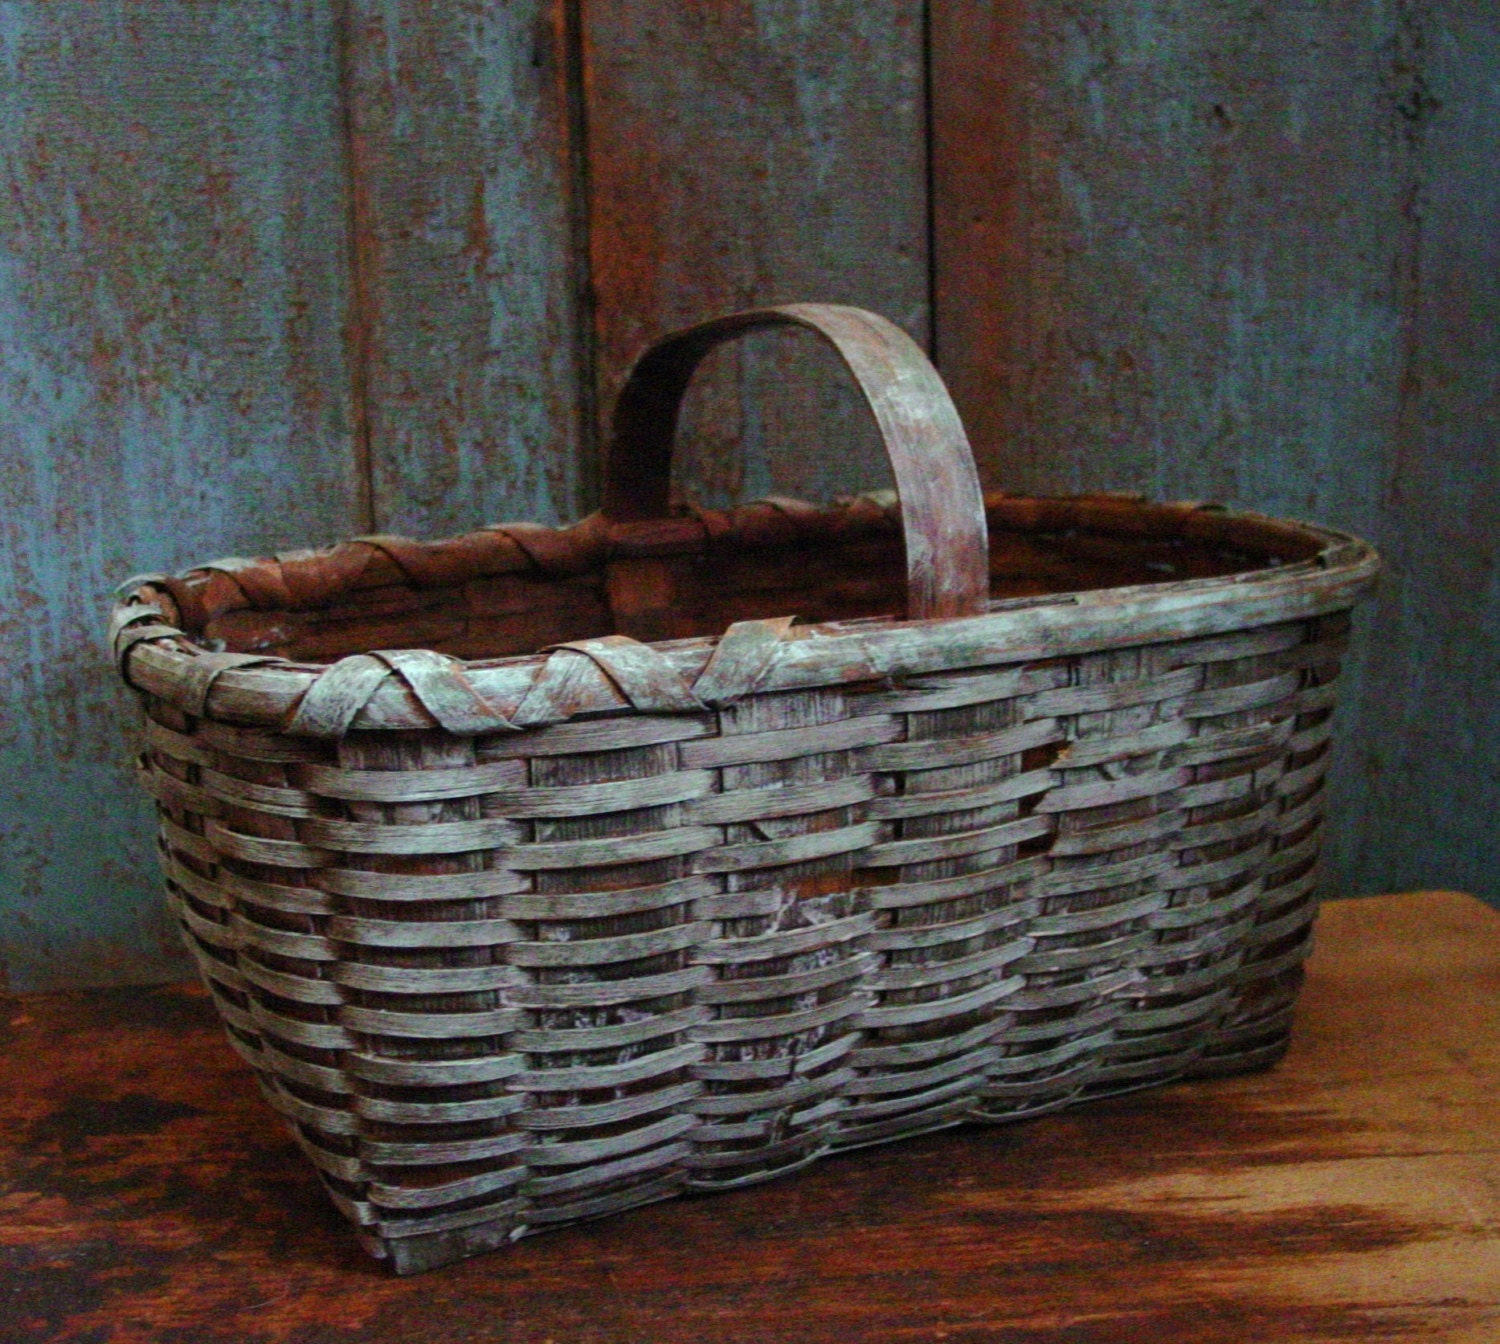 antique primitive wood splint painted basket market basket. Black Bedroom Furniture Sets. Home Design Ideas